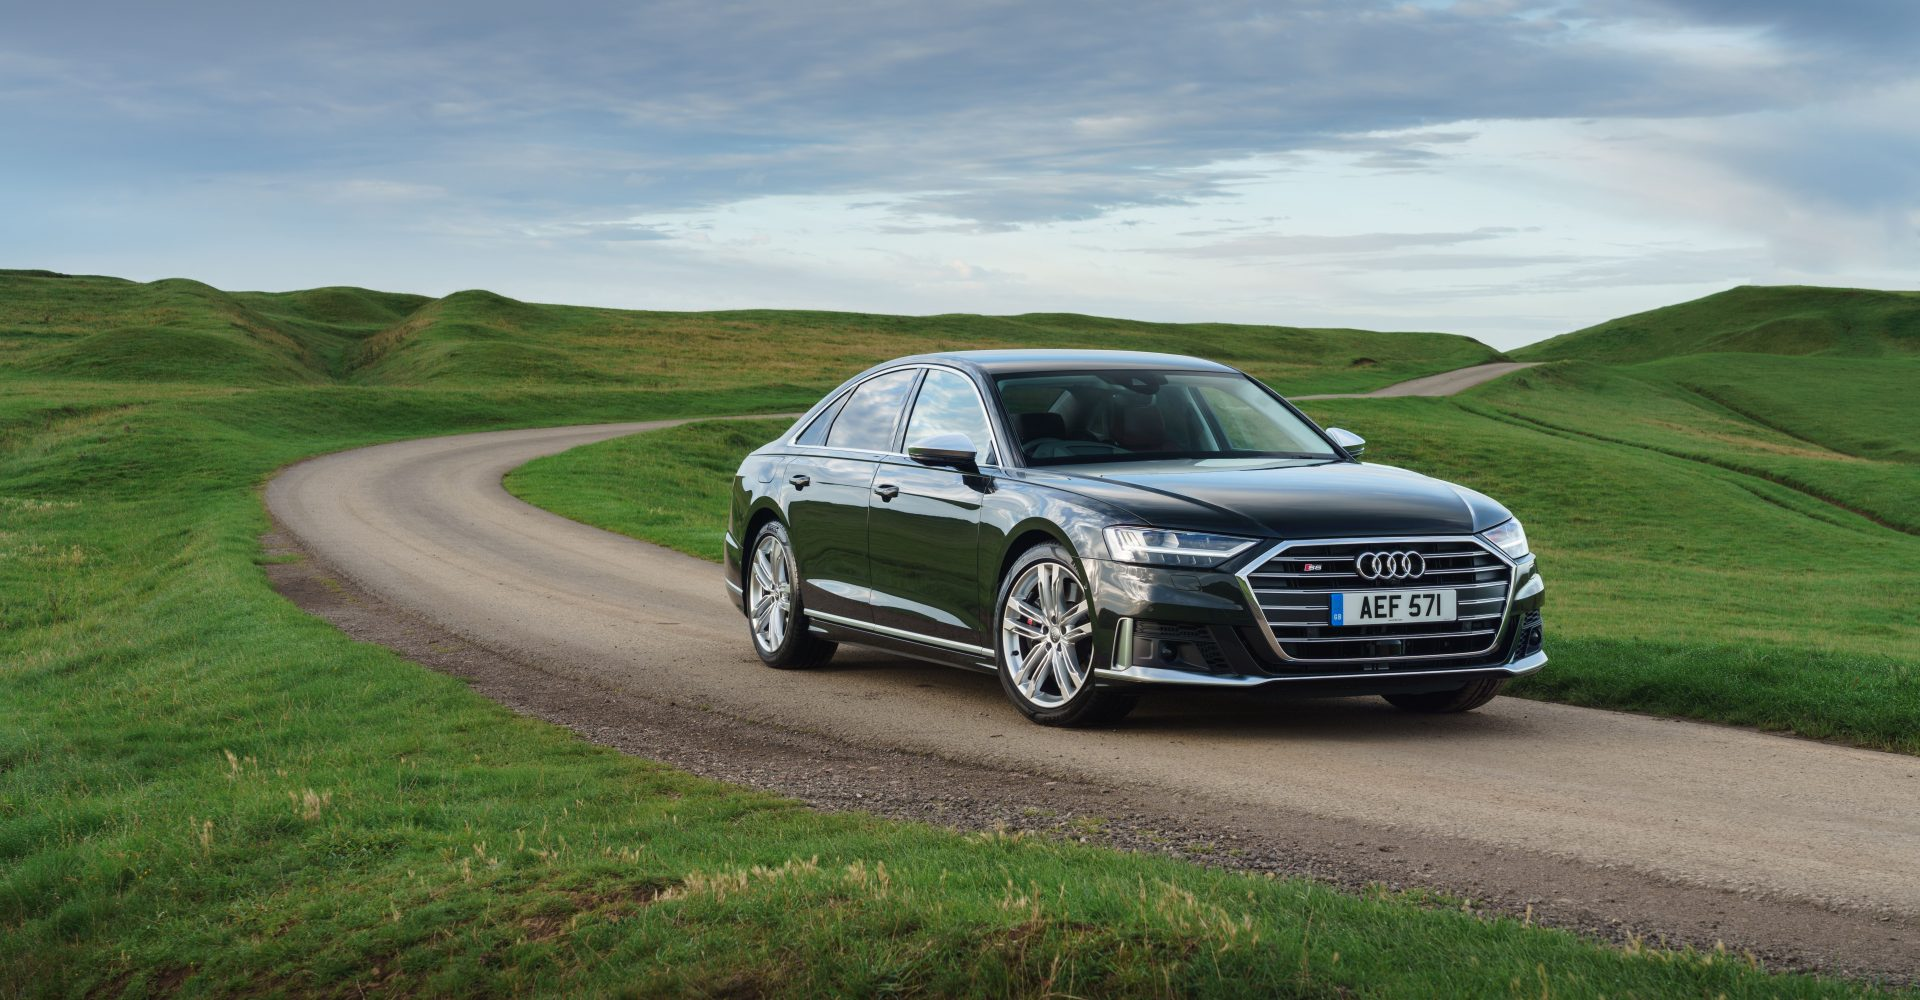 First Drive: The Audi S8 is a car that can do it all